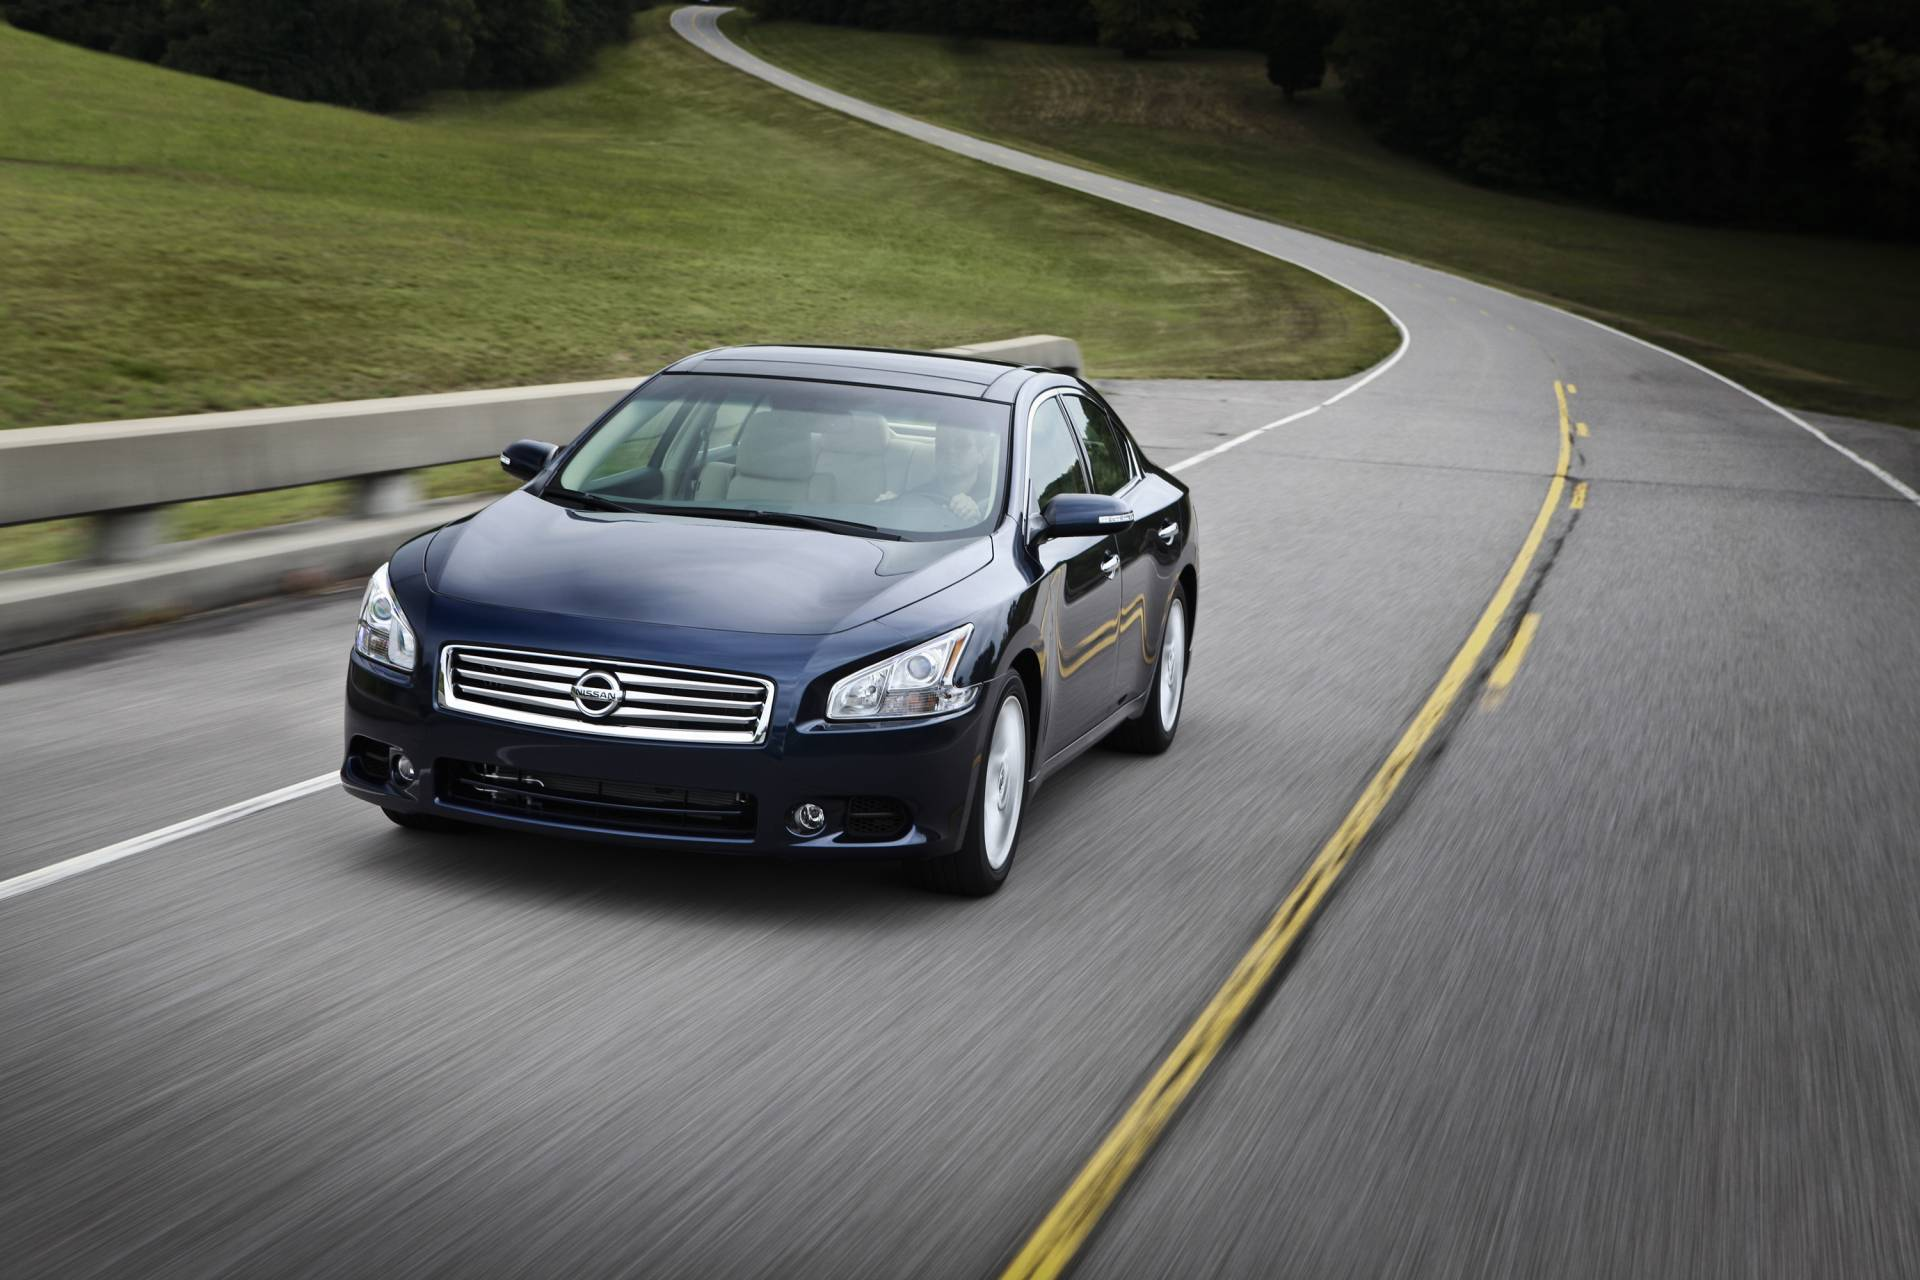 maxima s nissan detail used sedan motorcars of nashville at